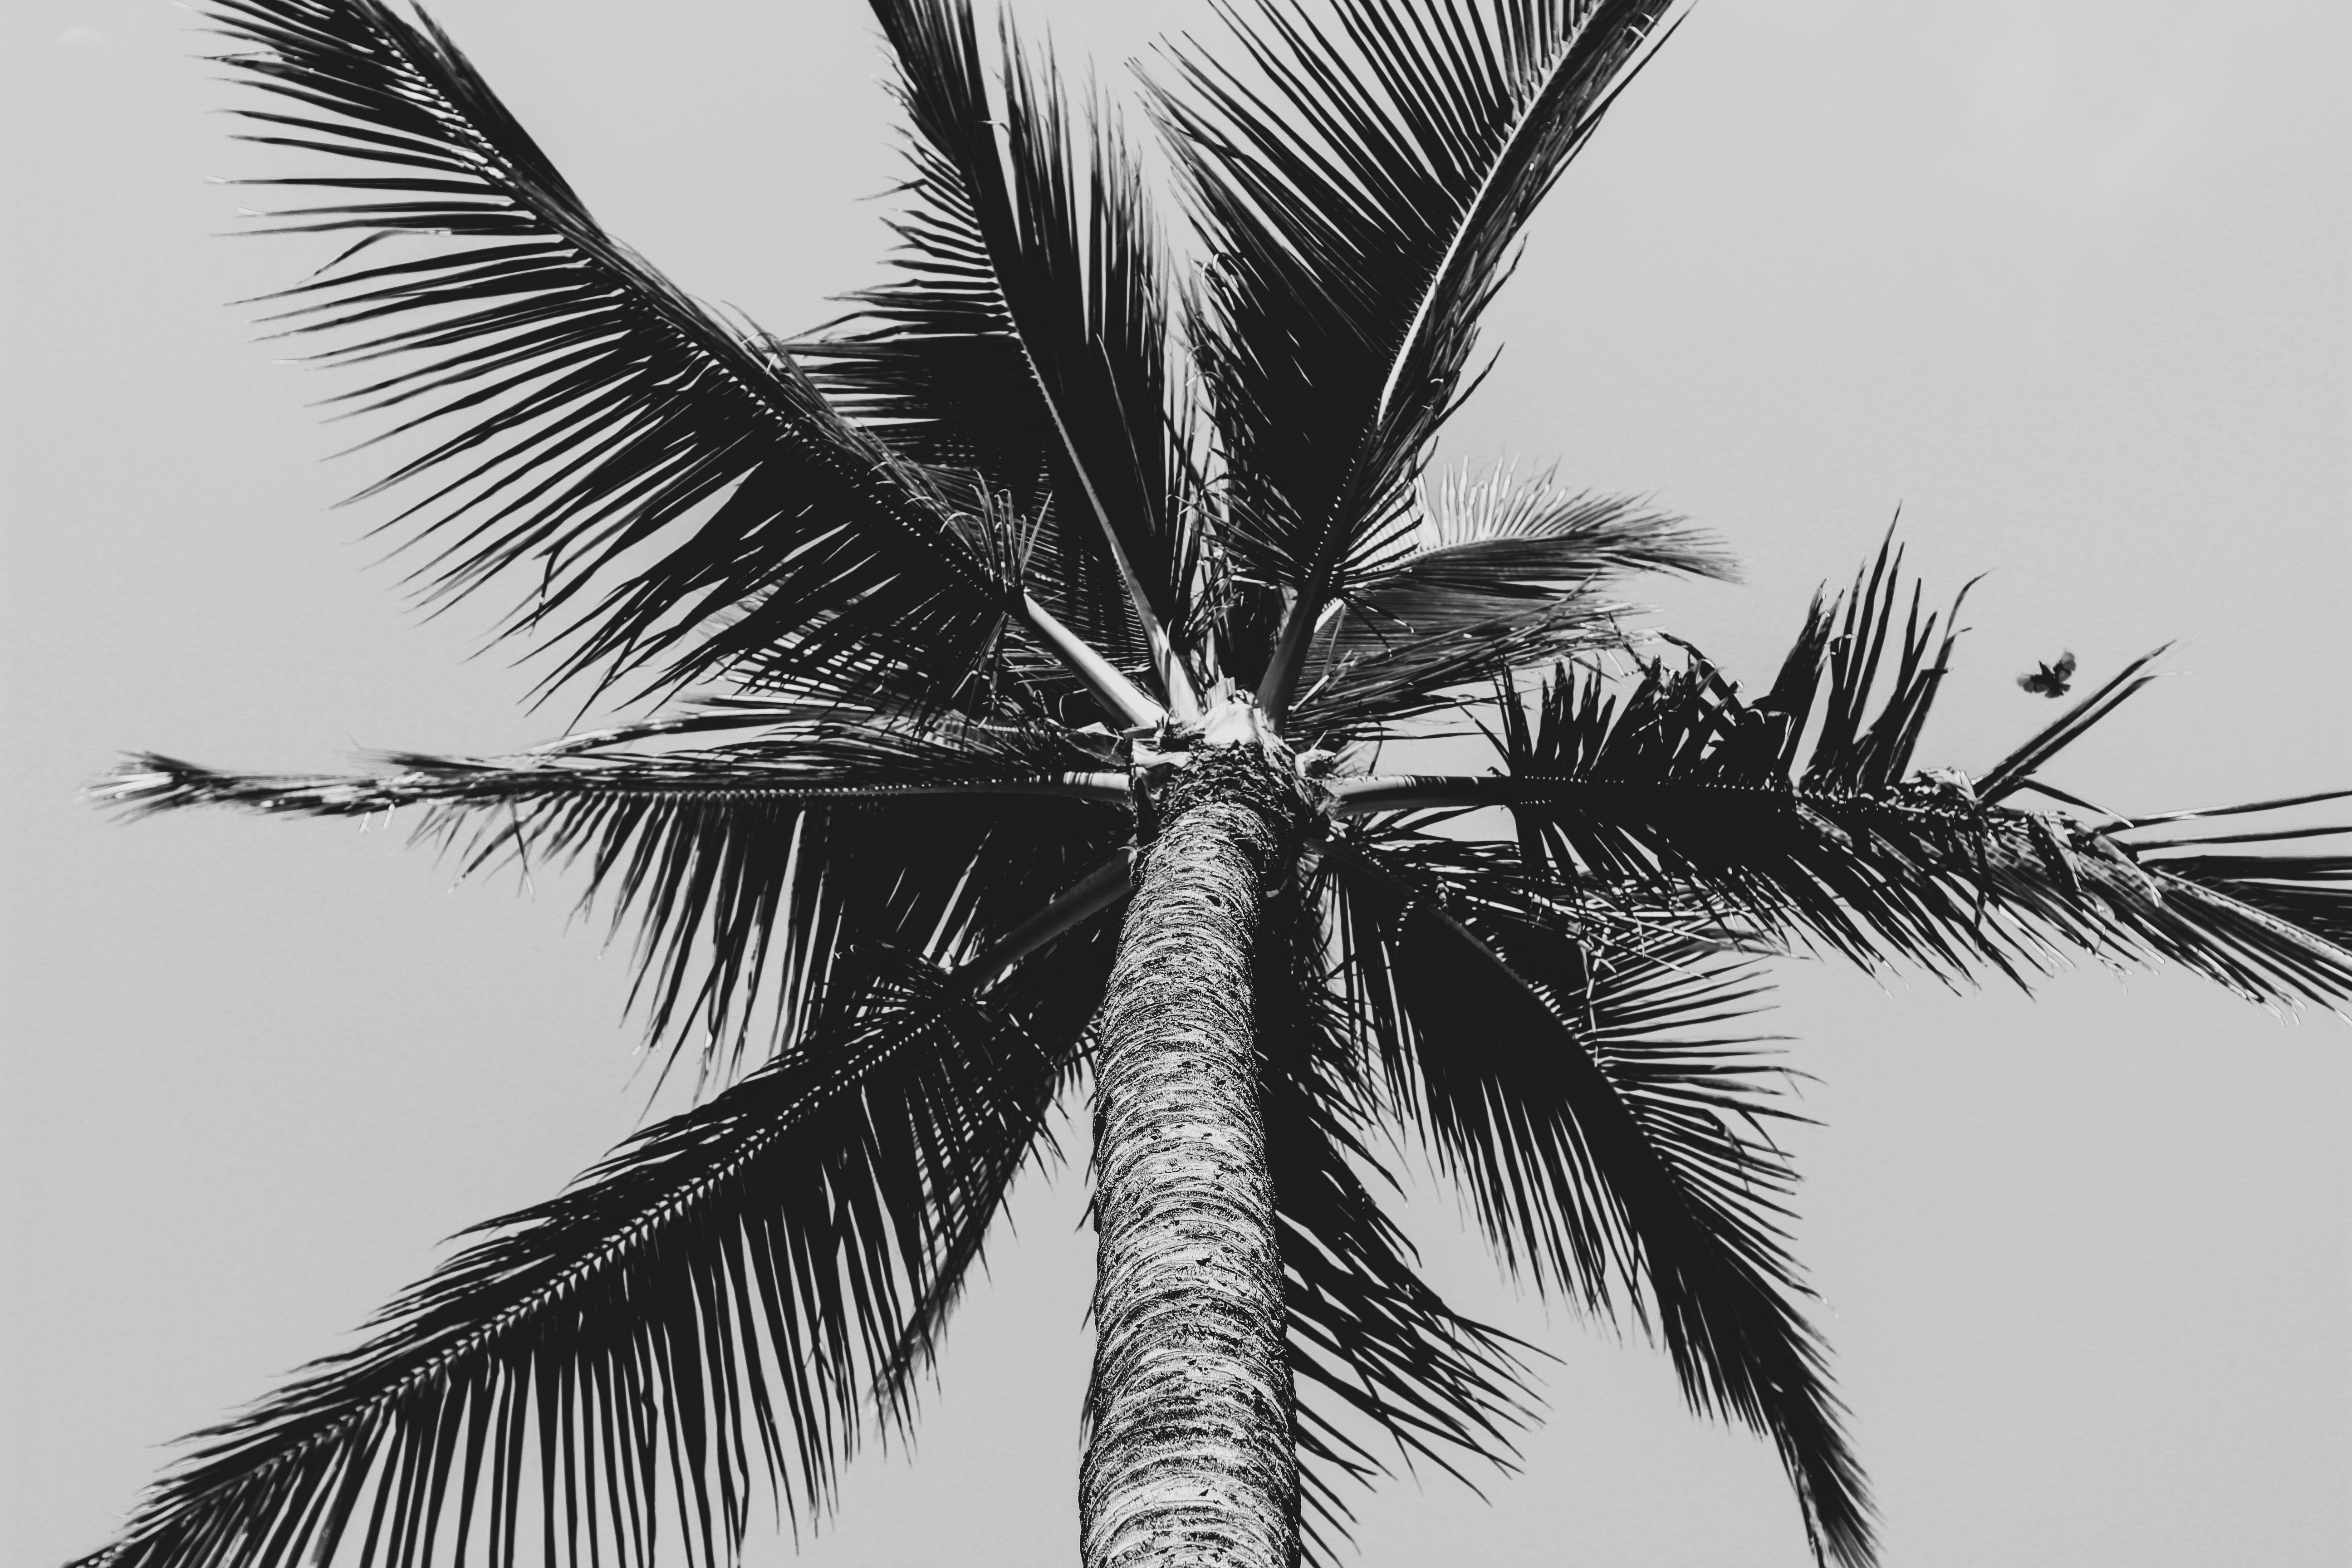 grayscale low angle photography of coconut palm tree